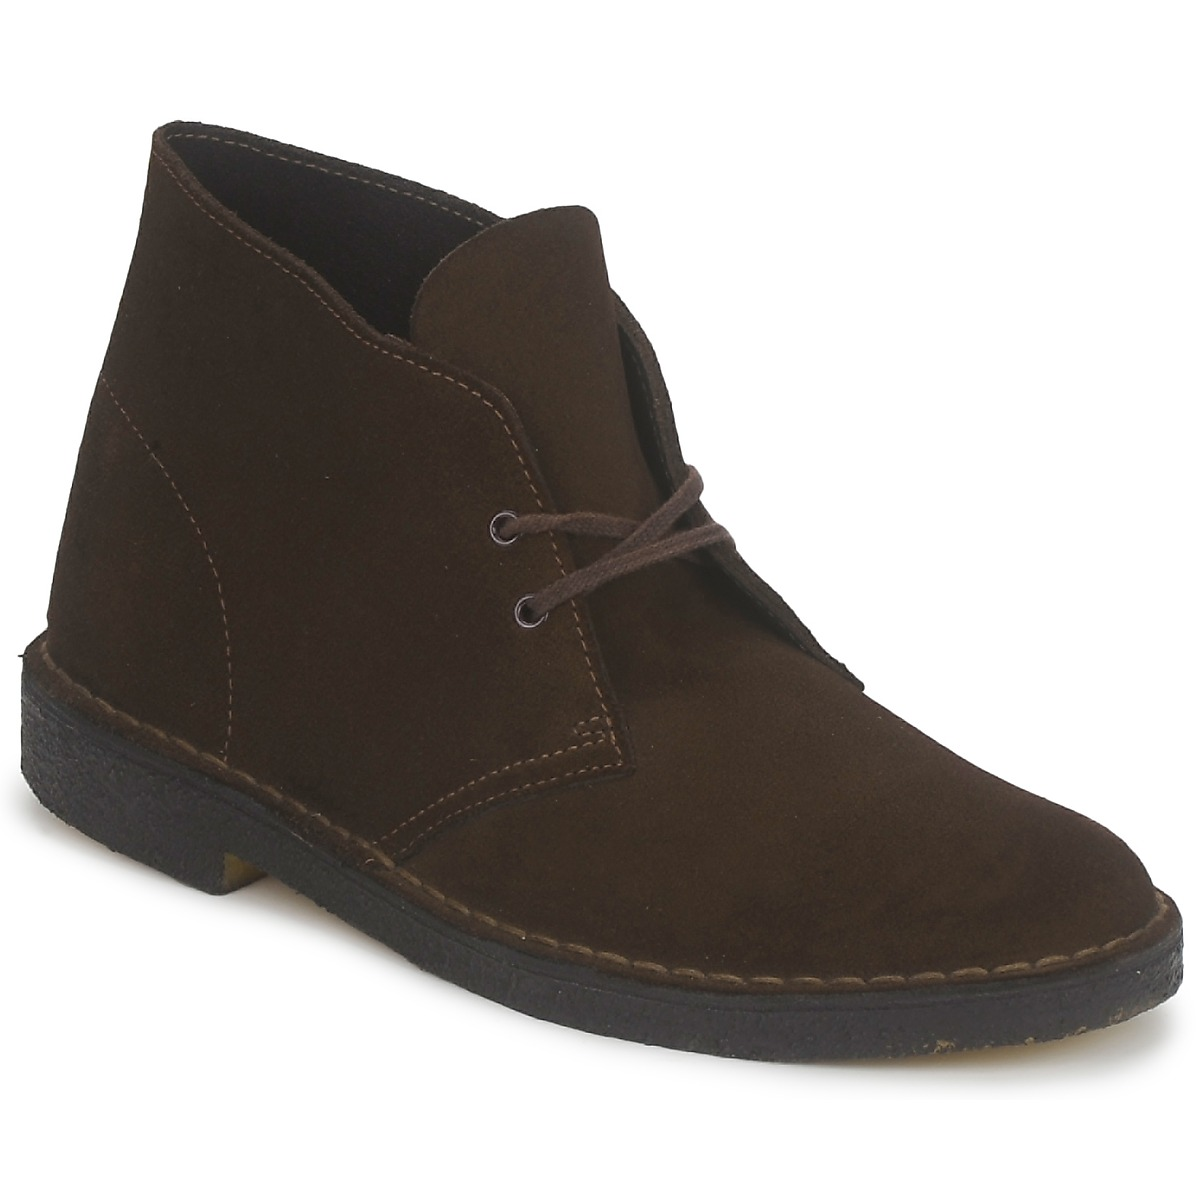 Clarks DESERT BOOT Marrone